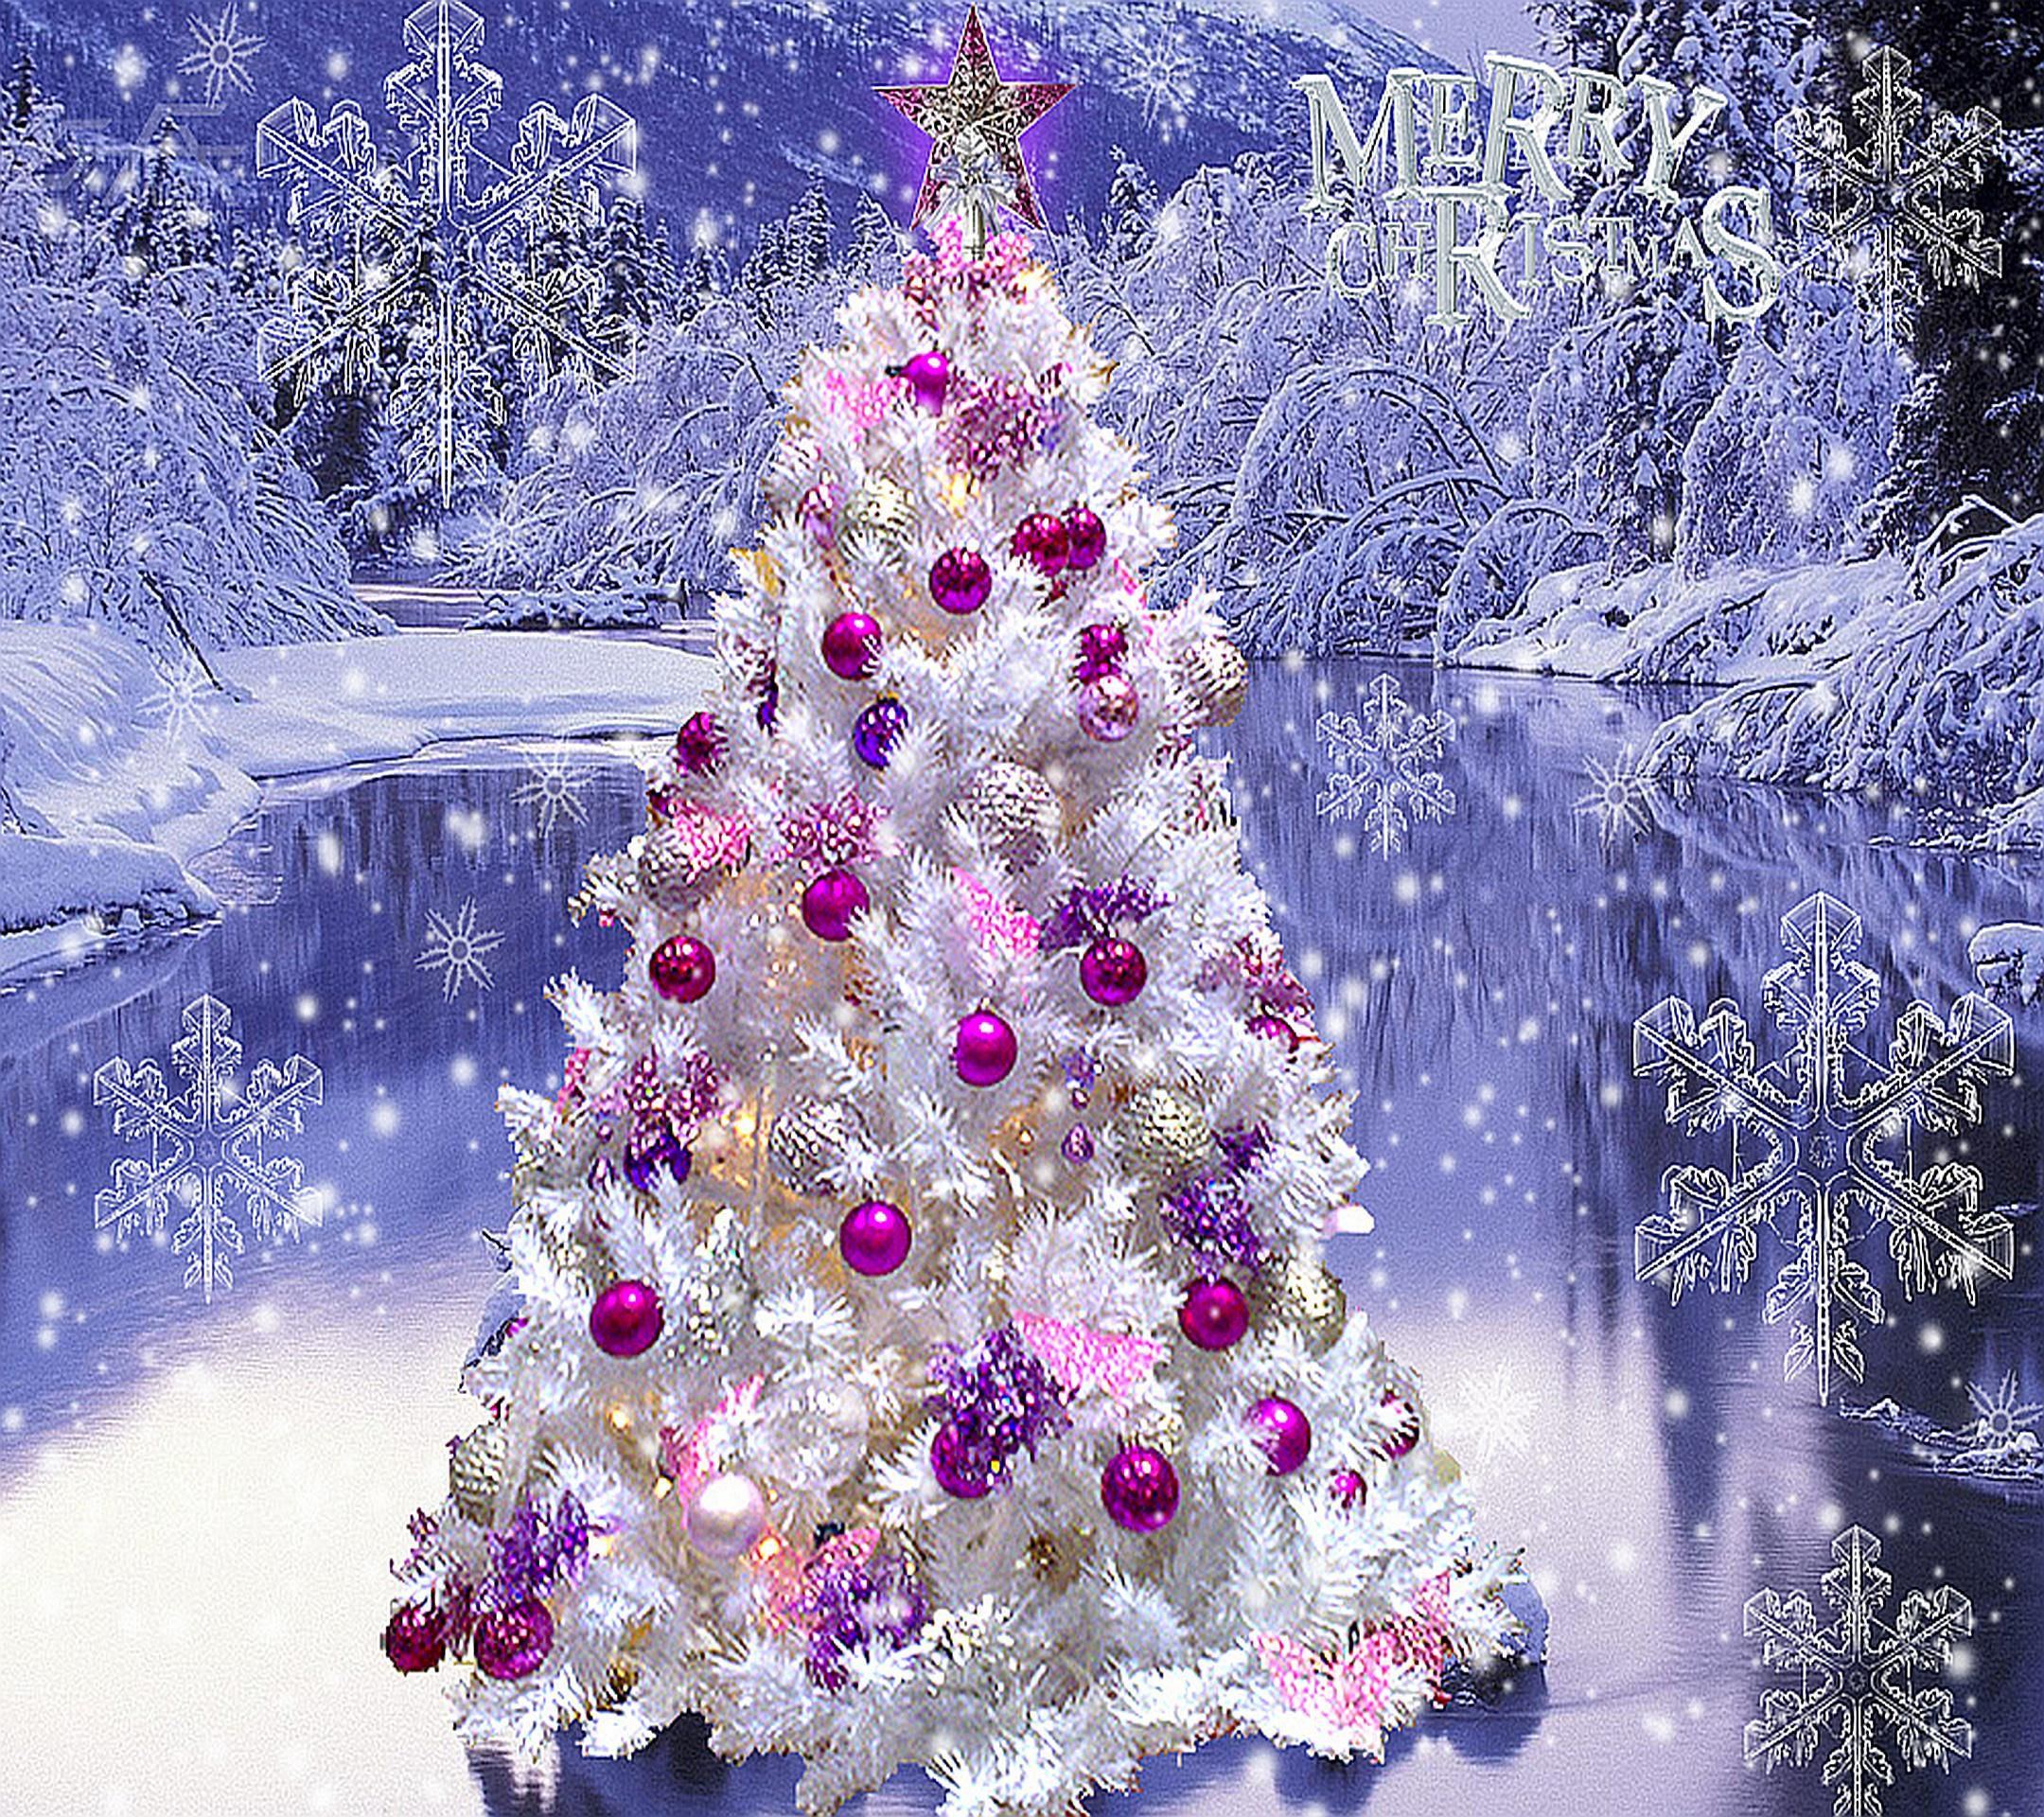 Crop Php 2160 1920 Merry Christmas Wallpaper Merry Christmas Pictures Beautiful Christmas Trees